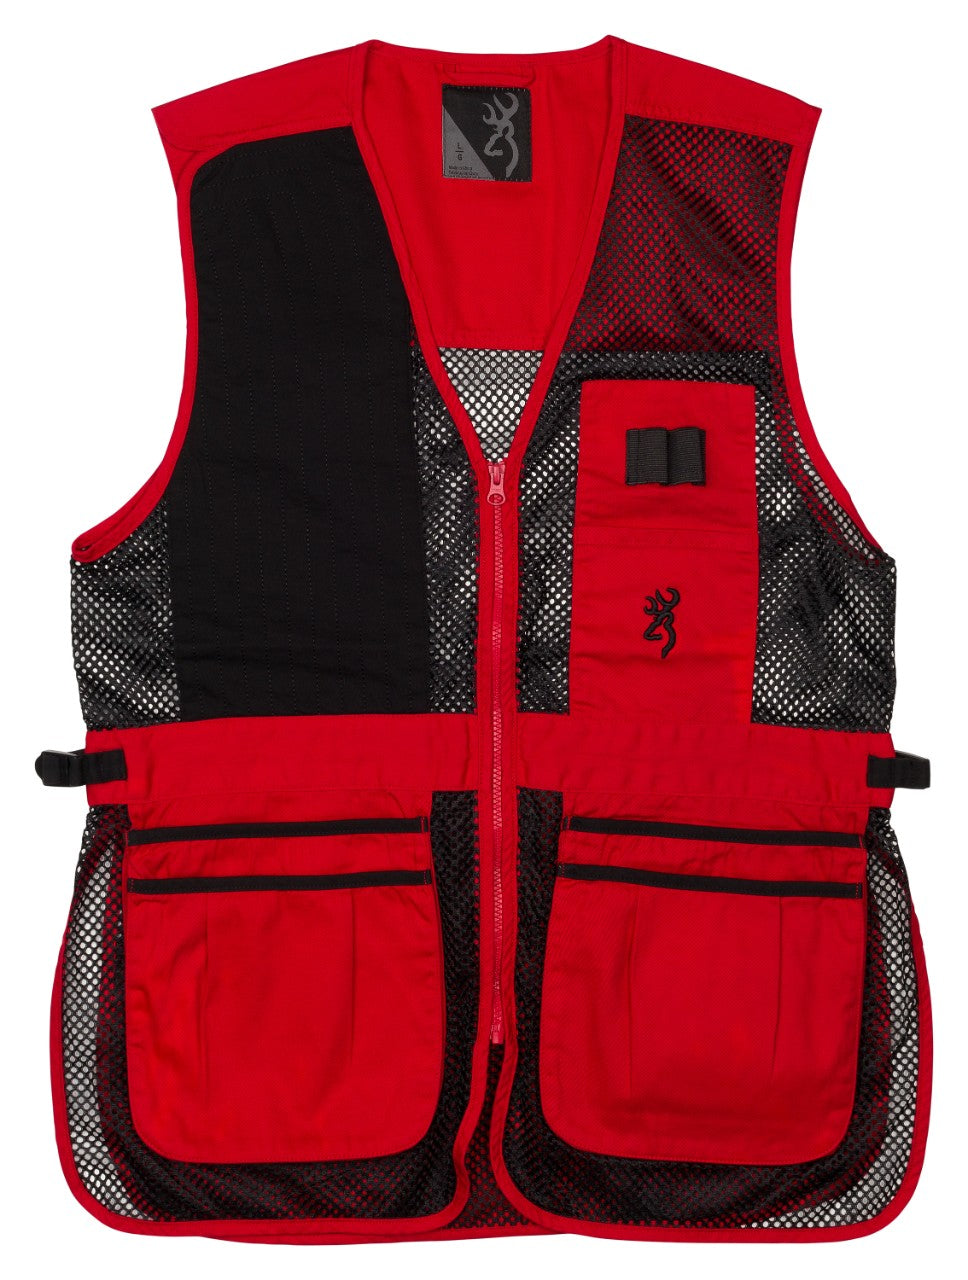 VST,TRAPPER CREEK RED/BLACK,3XL